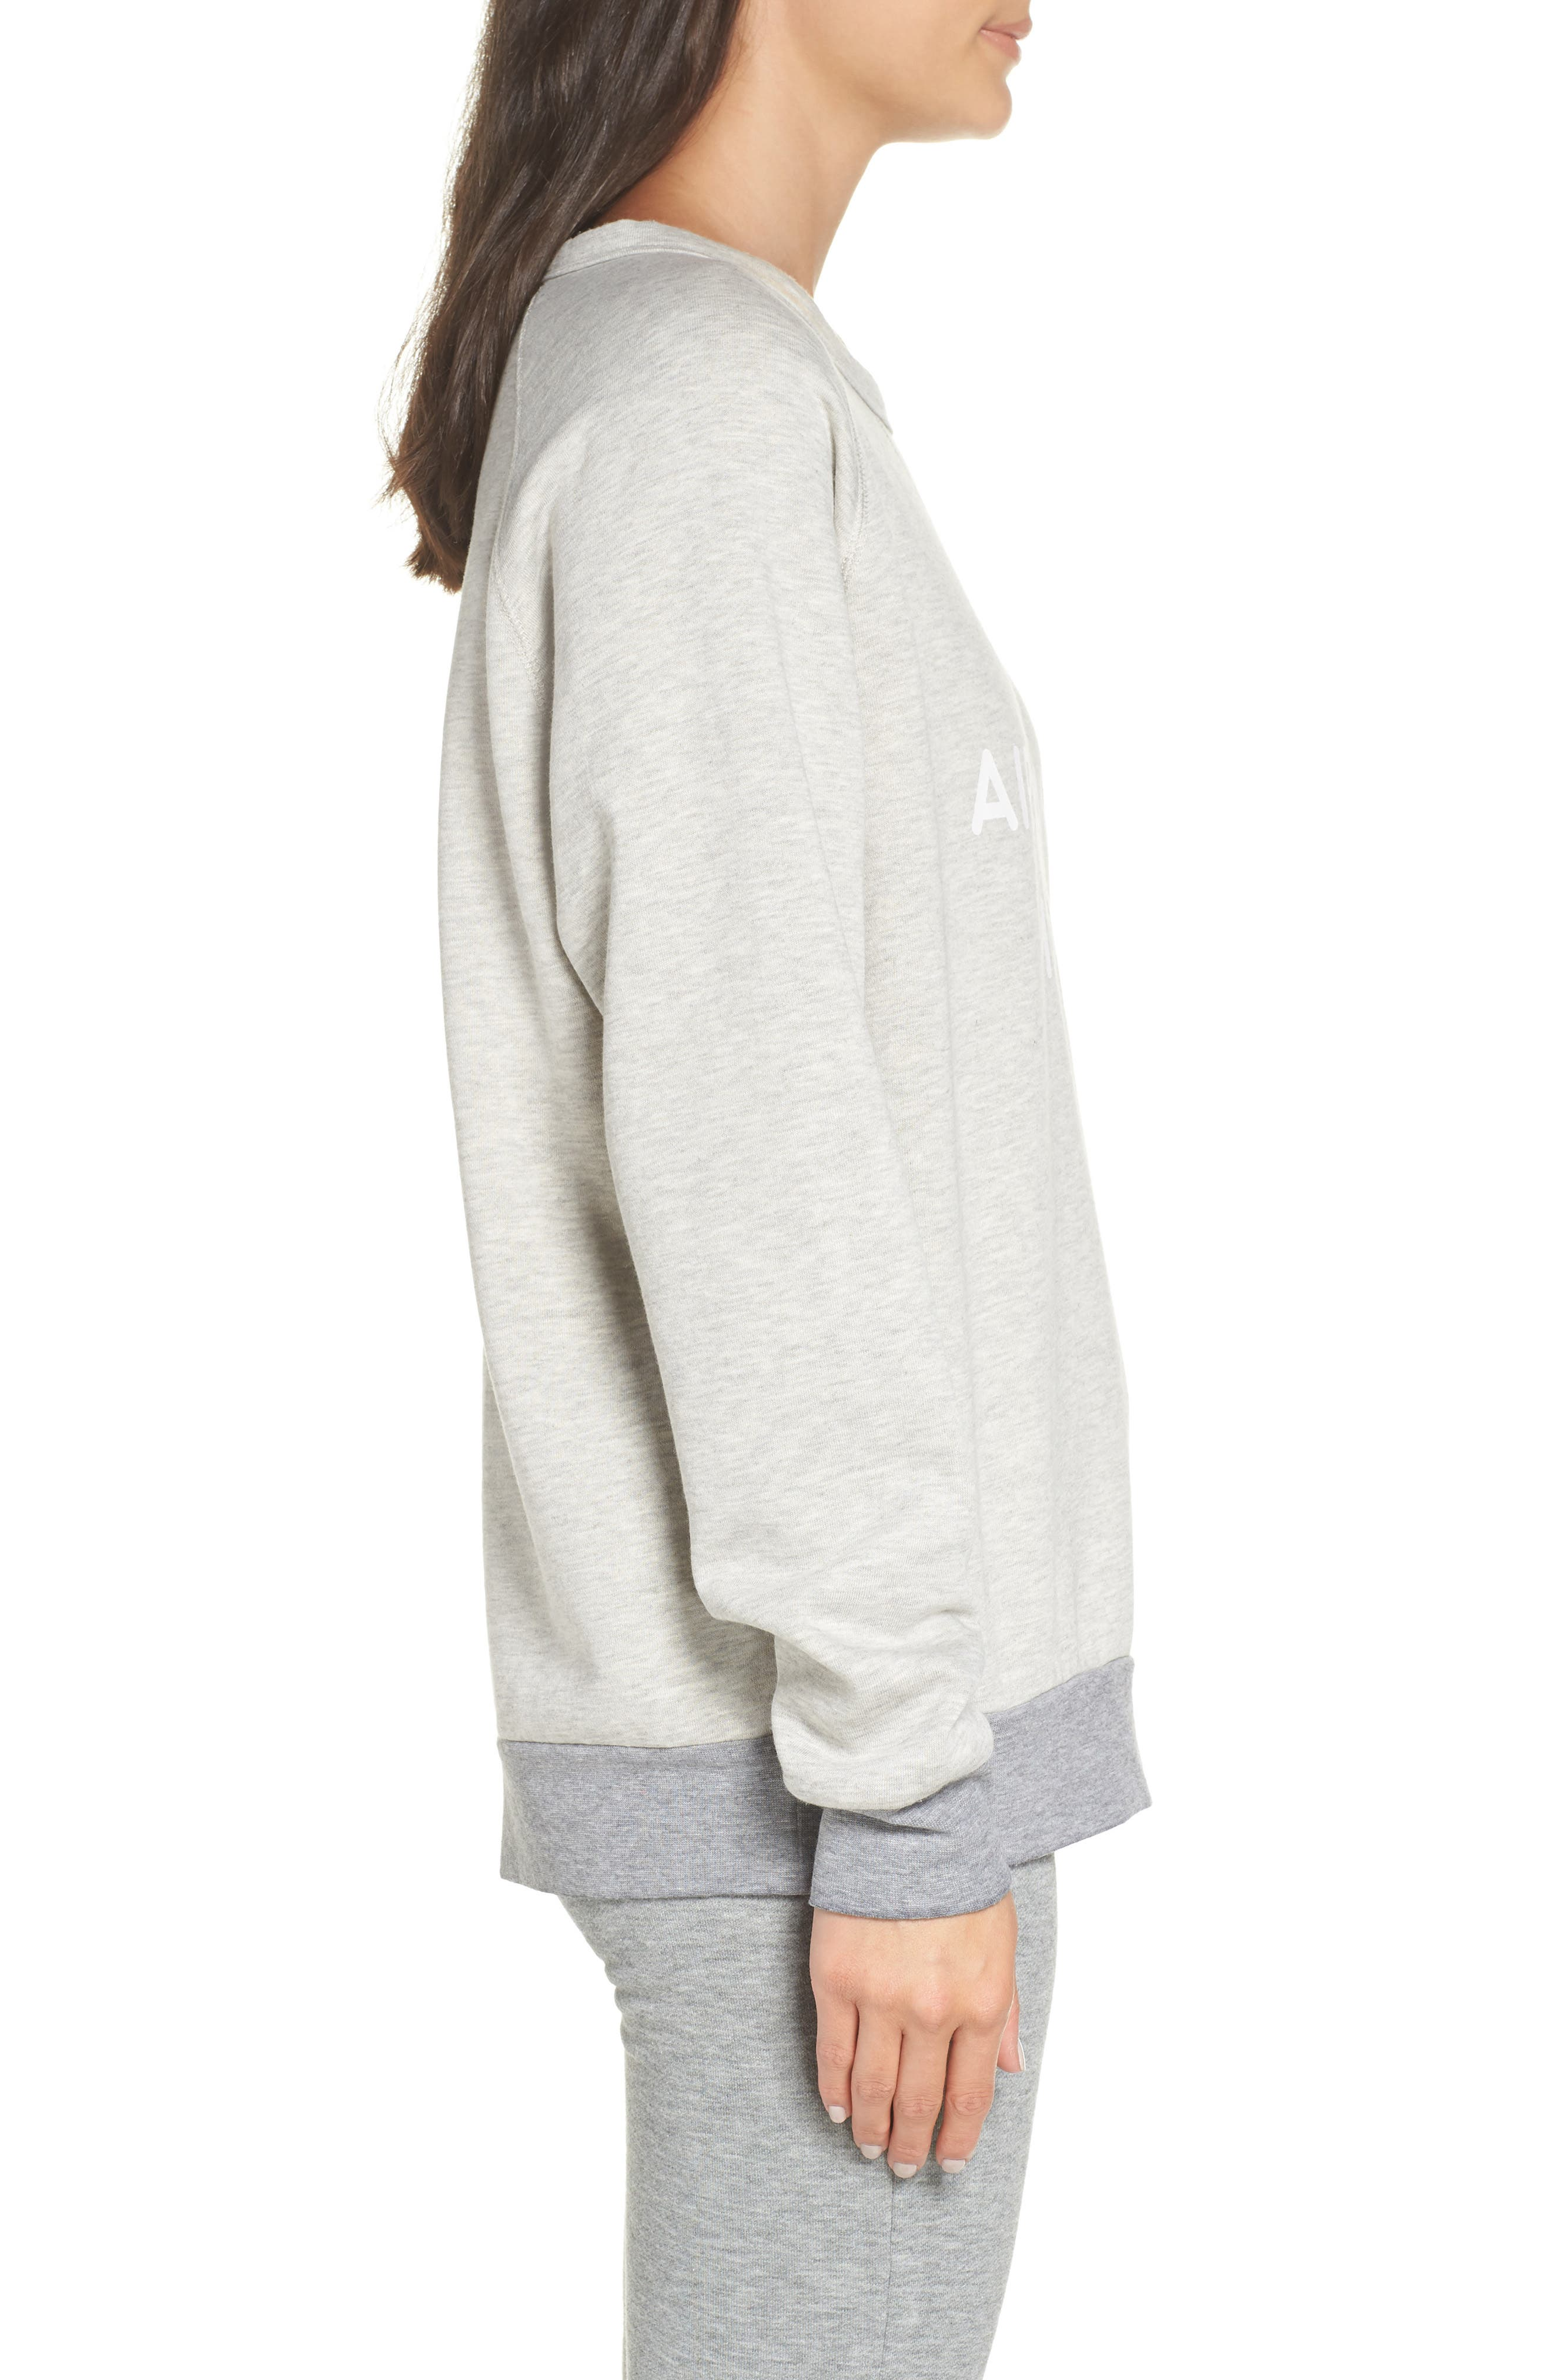 Airplane Mode Cozy Lounge Sweatshirt,                             Alternate thumbnail 3, color,                             Pebble Heather